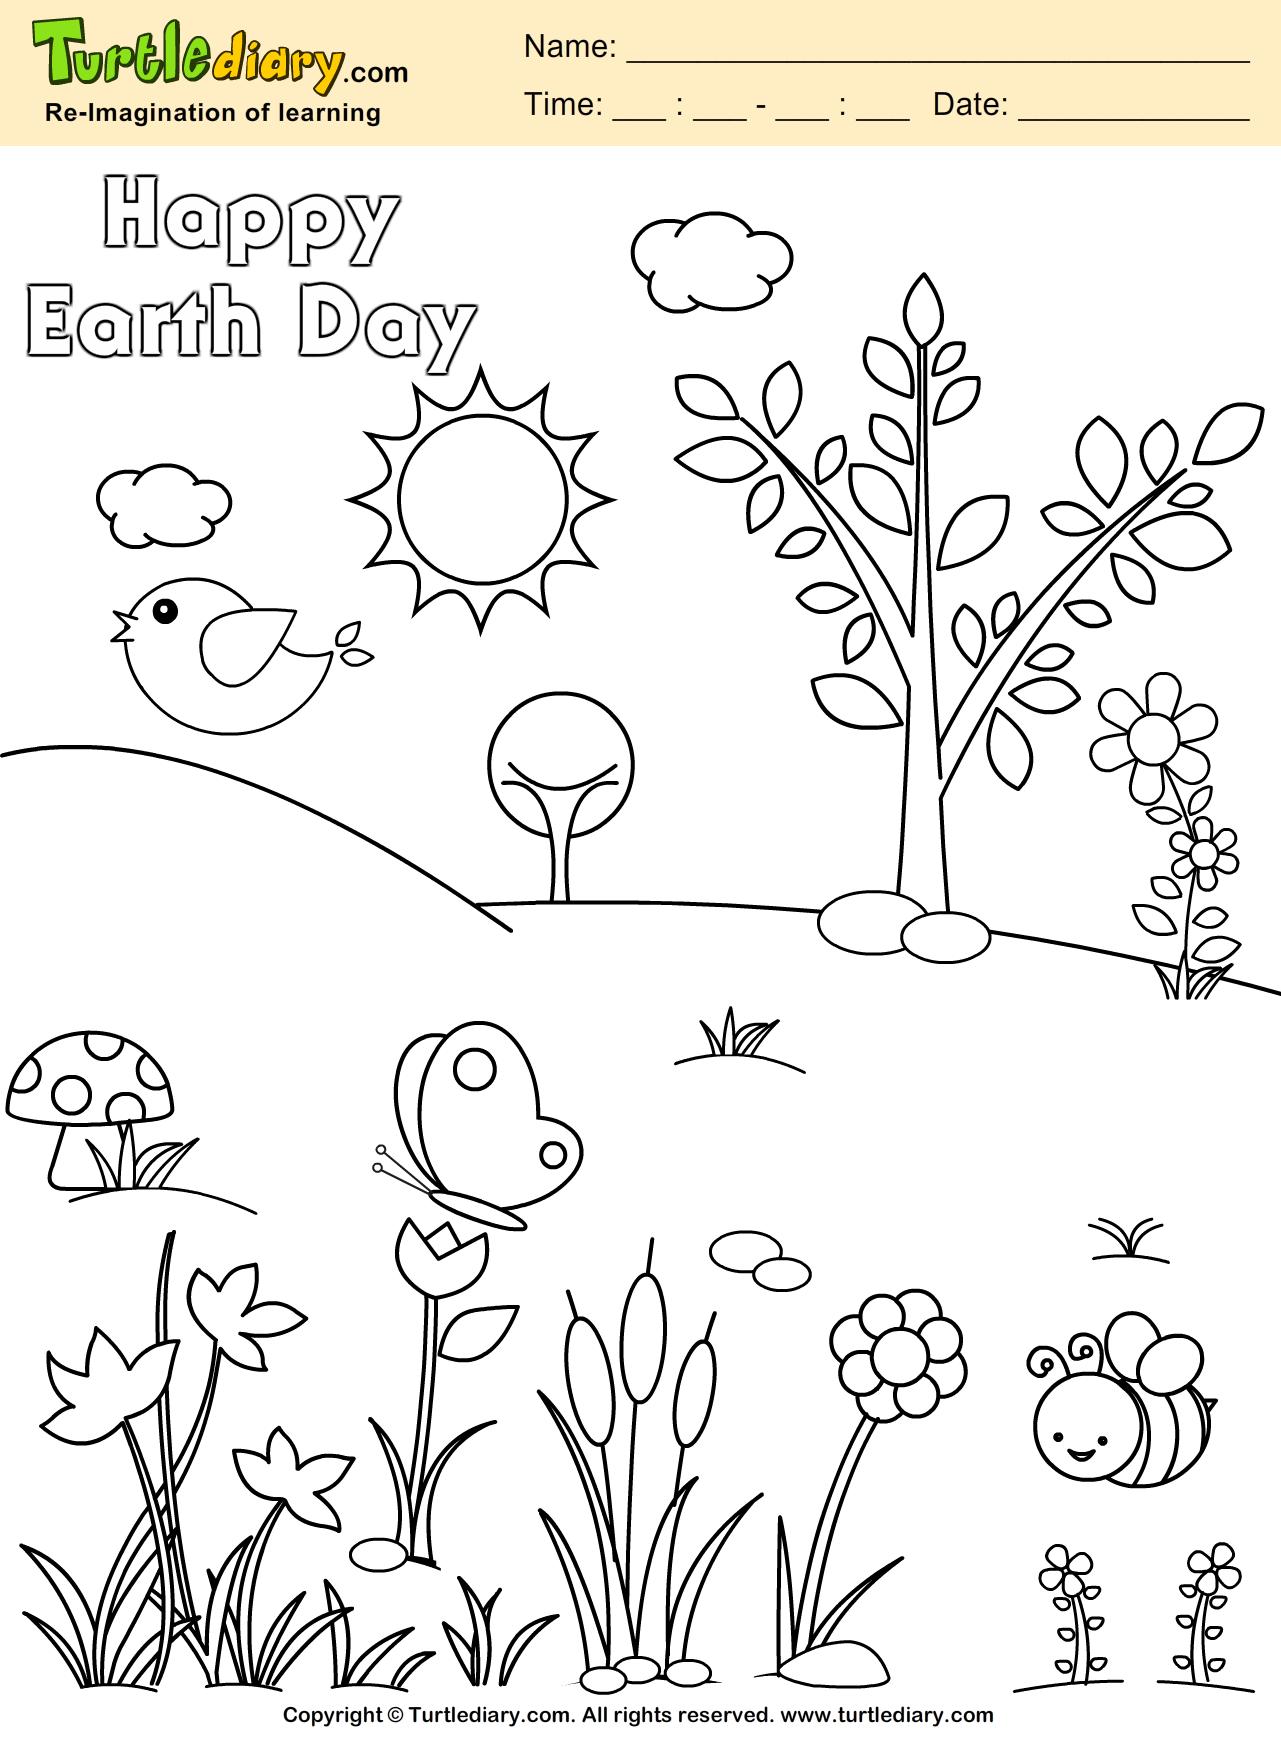 Happy Earth Day Planet Earth Coloring Page Kids Crafts